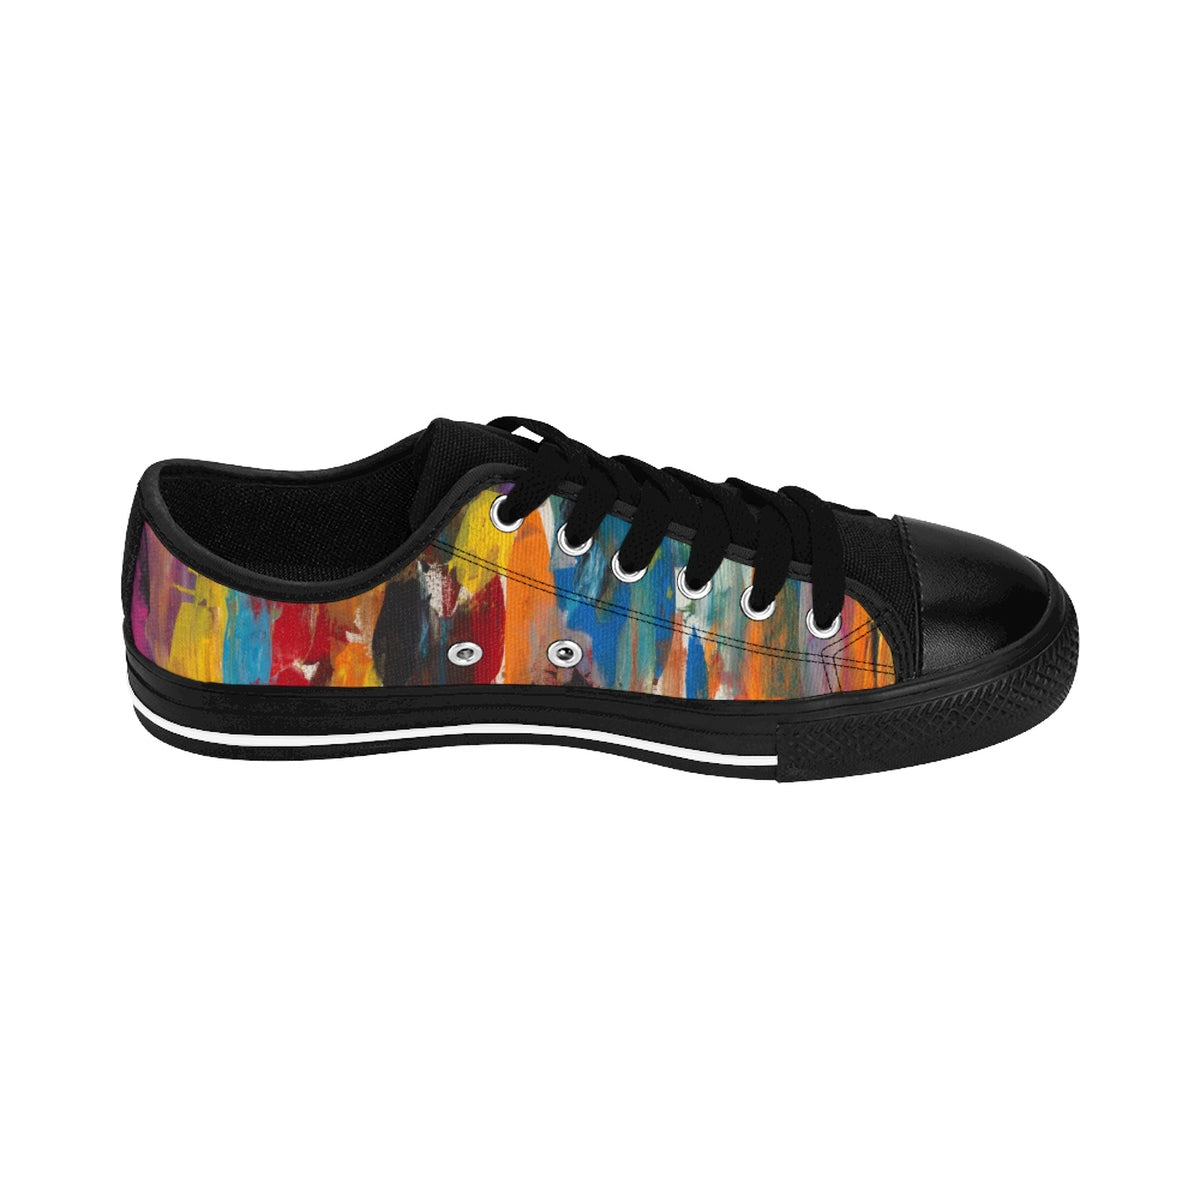 COLOR FUSION UNISEX Sneakers  SIZES  6 - 12